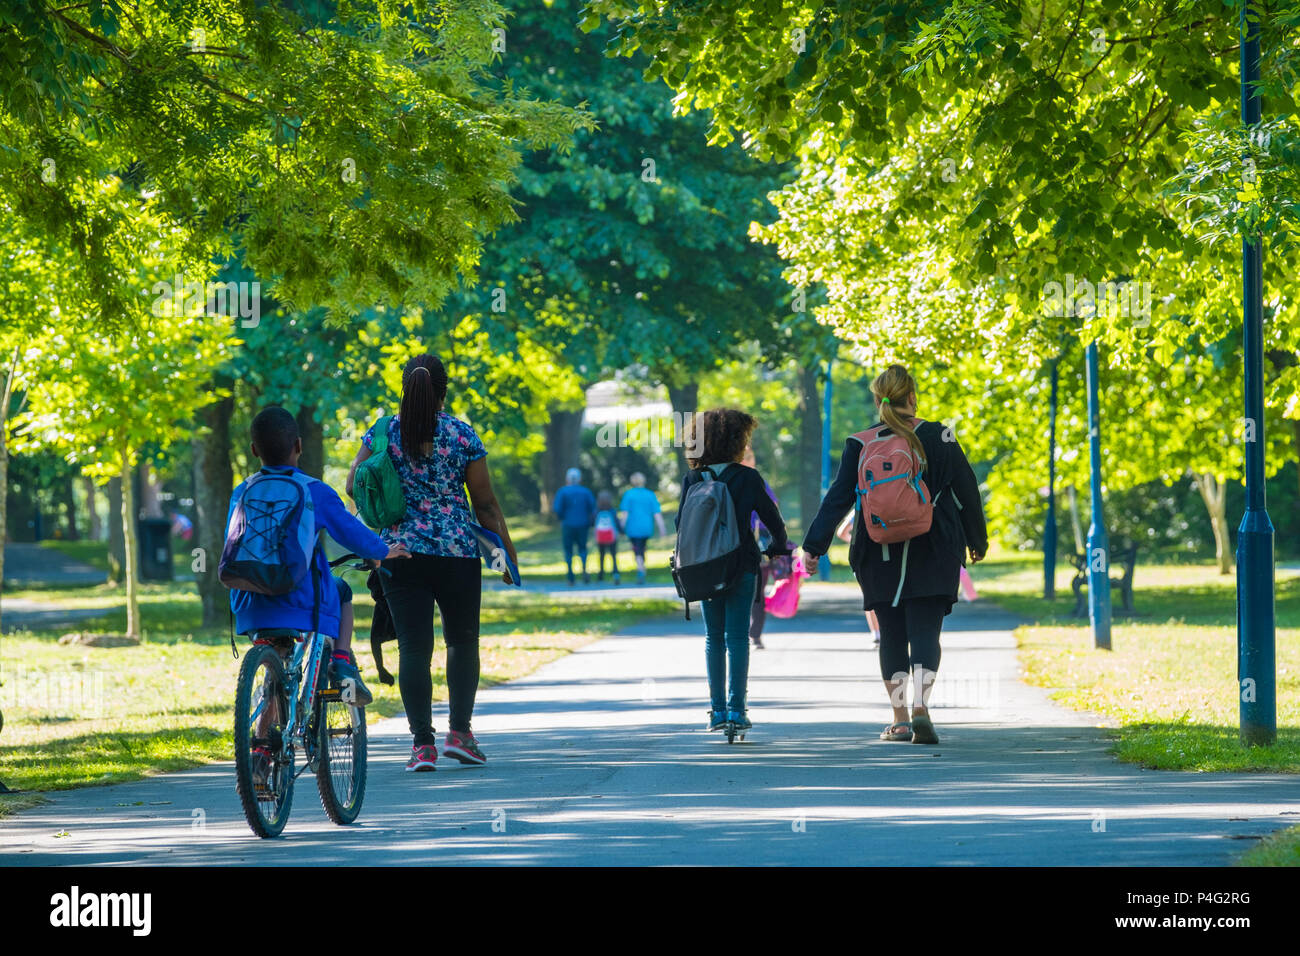 Aberystwyth, UK. 22 June 2018.  Familes walking and cycling down Plas Crug park on a warm sunny morning in Aberystwyth Wales.  Temperatures are set to rise over the coming days, reaching the high 20's celsius by the middle of next week  photo © Keith Morris / Alamy Live News - Stock Image